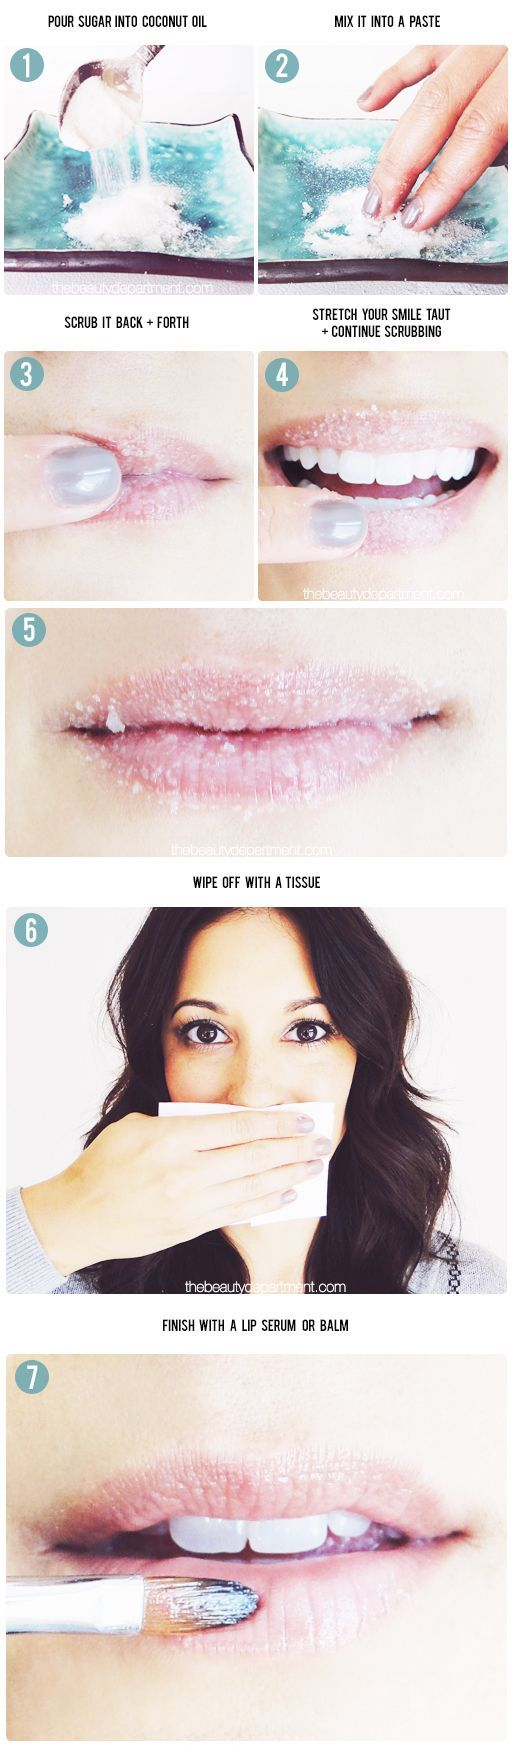 This is a pretty cool way to get soft and smooth lips. It's all natural too! This DIY is described to not only exfoliate your lips but also moisturize it. With 7 easy steps, what's not to love?